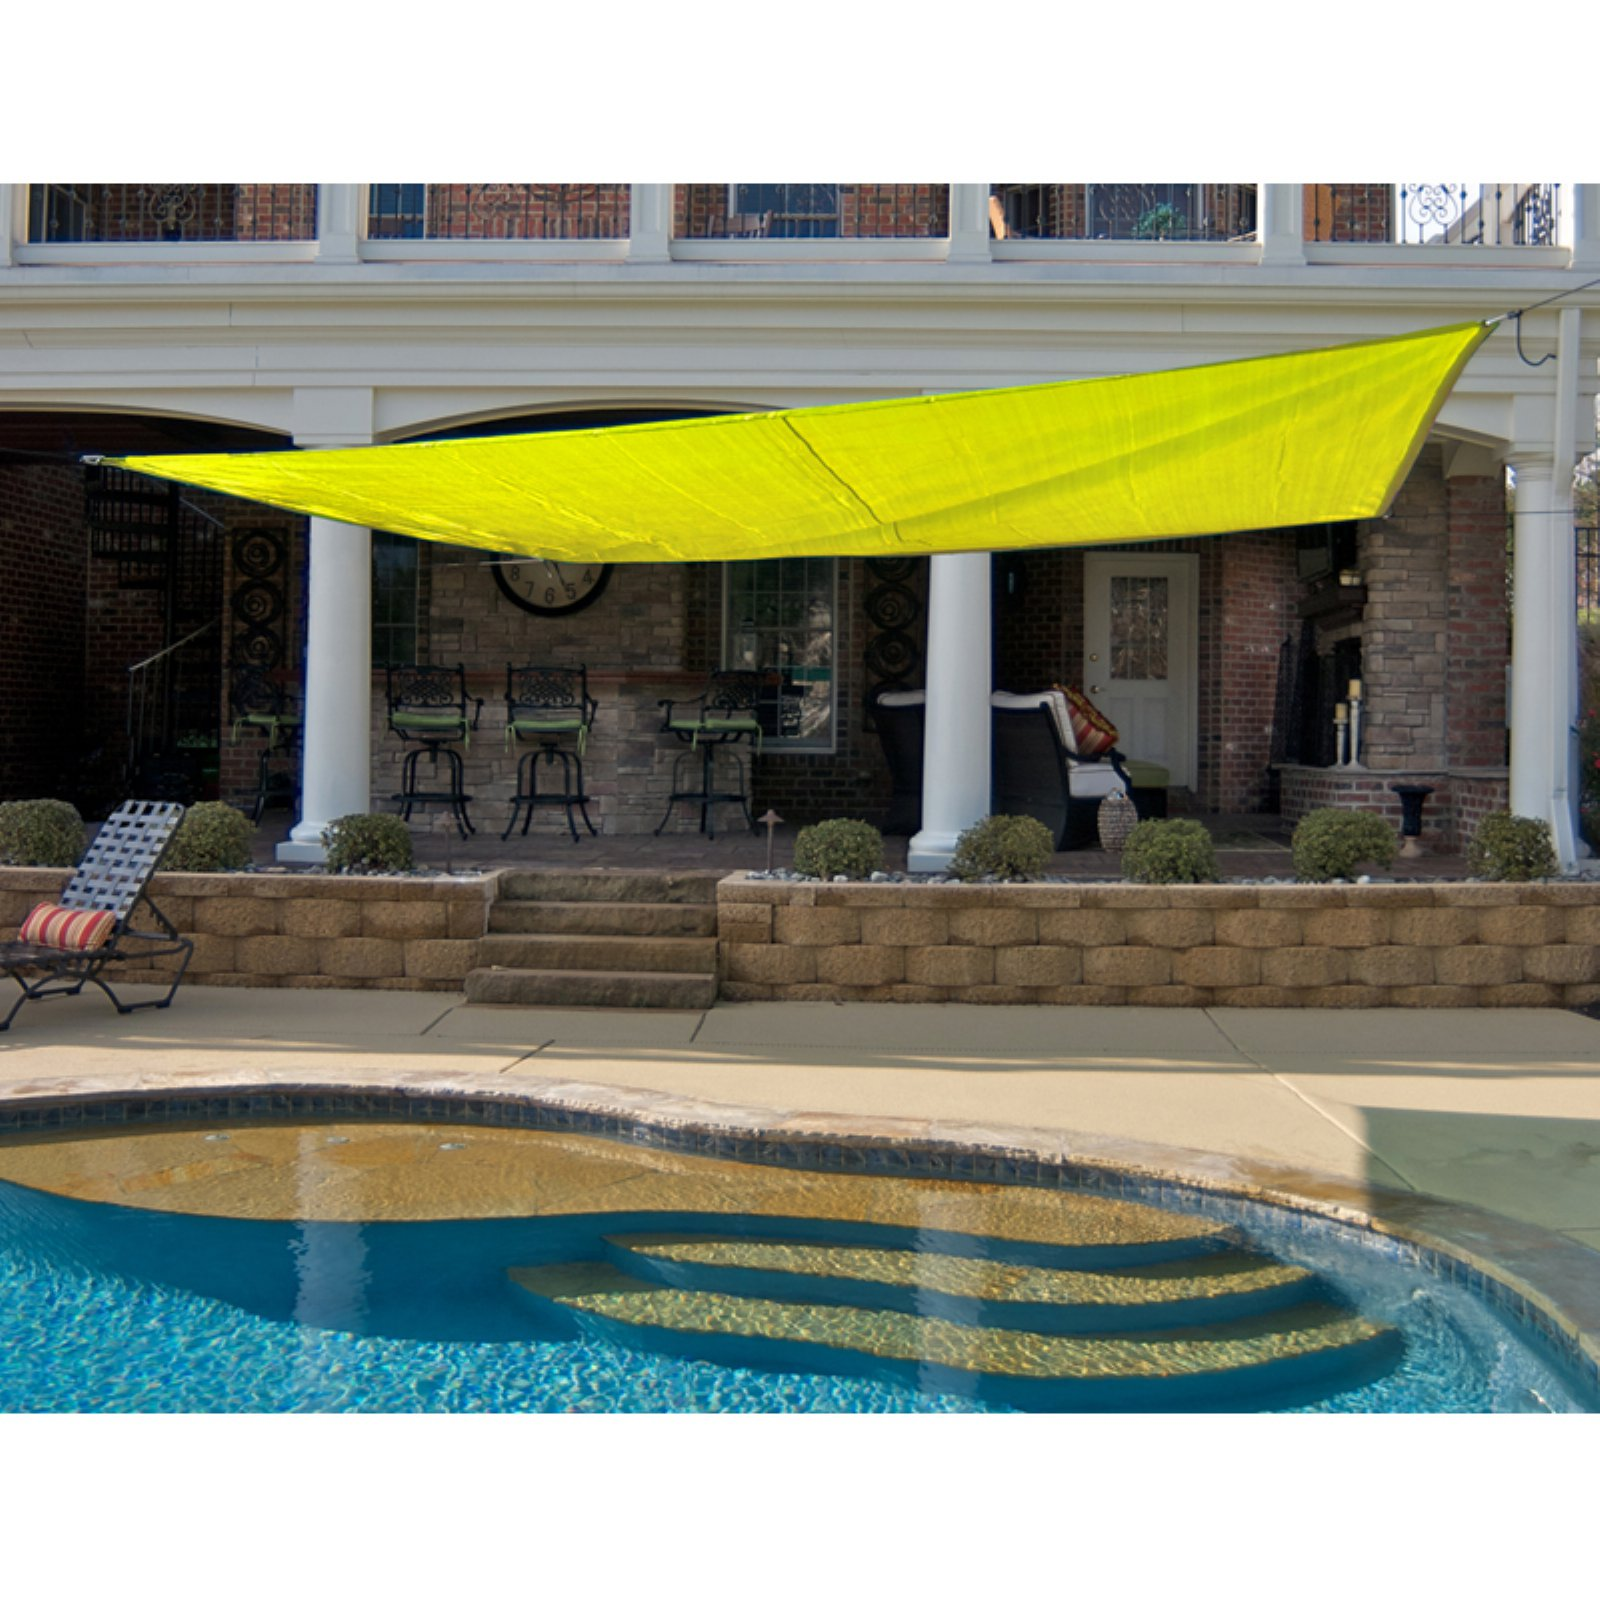 King Canopy Triangle Sun Shade Sail  sc 1 st  Walmart & King Canopy Triangle Sun Shade Sail - Walmart.com